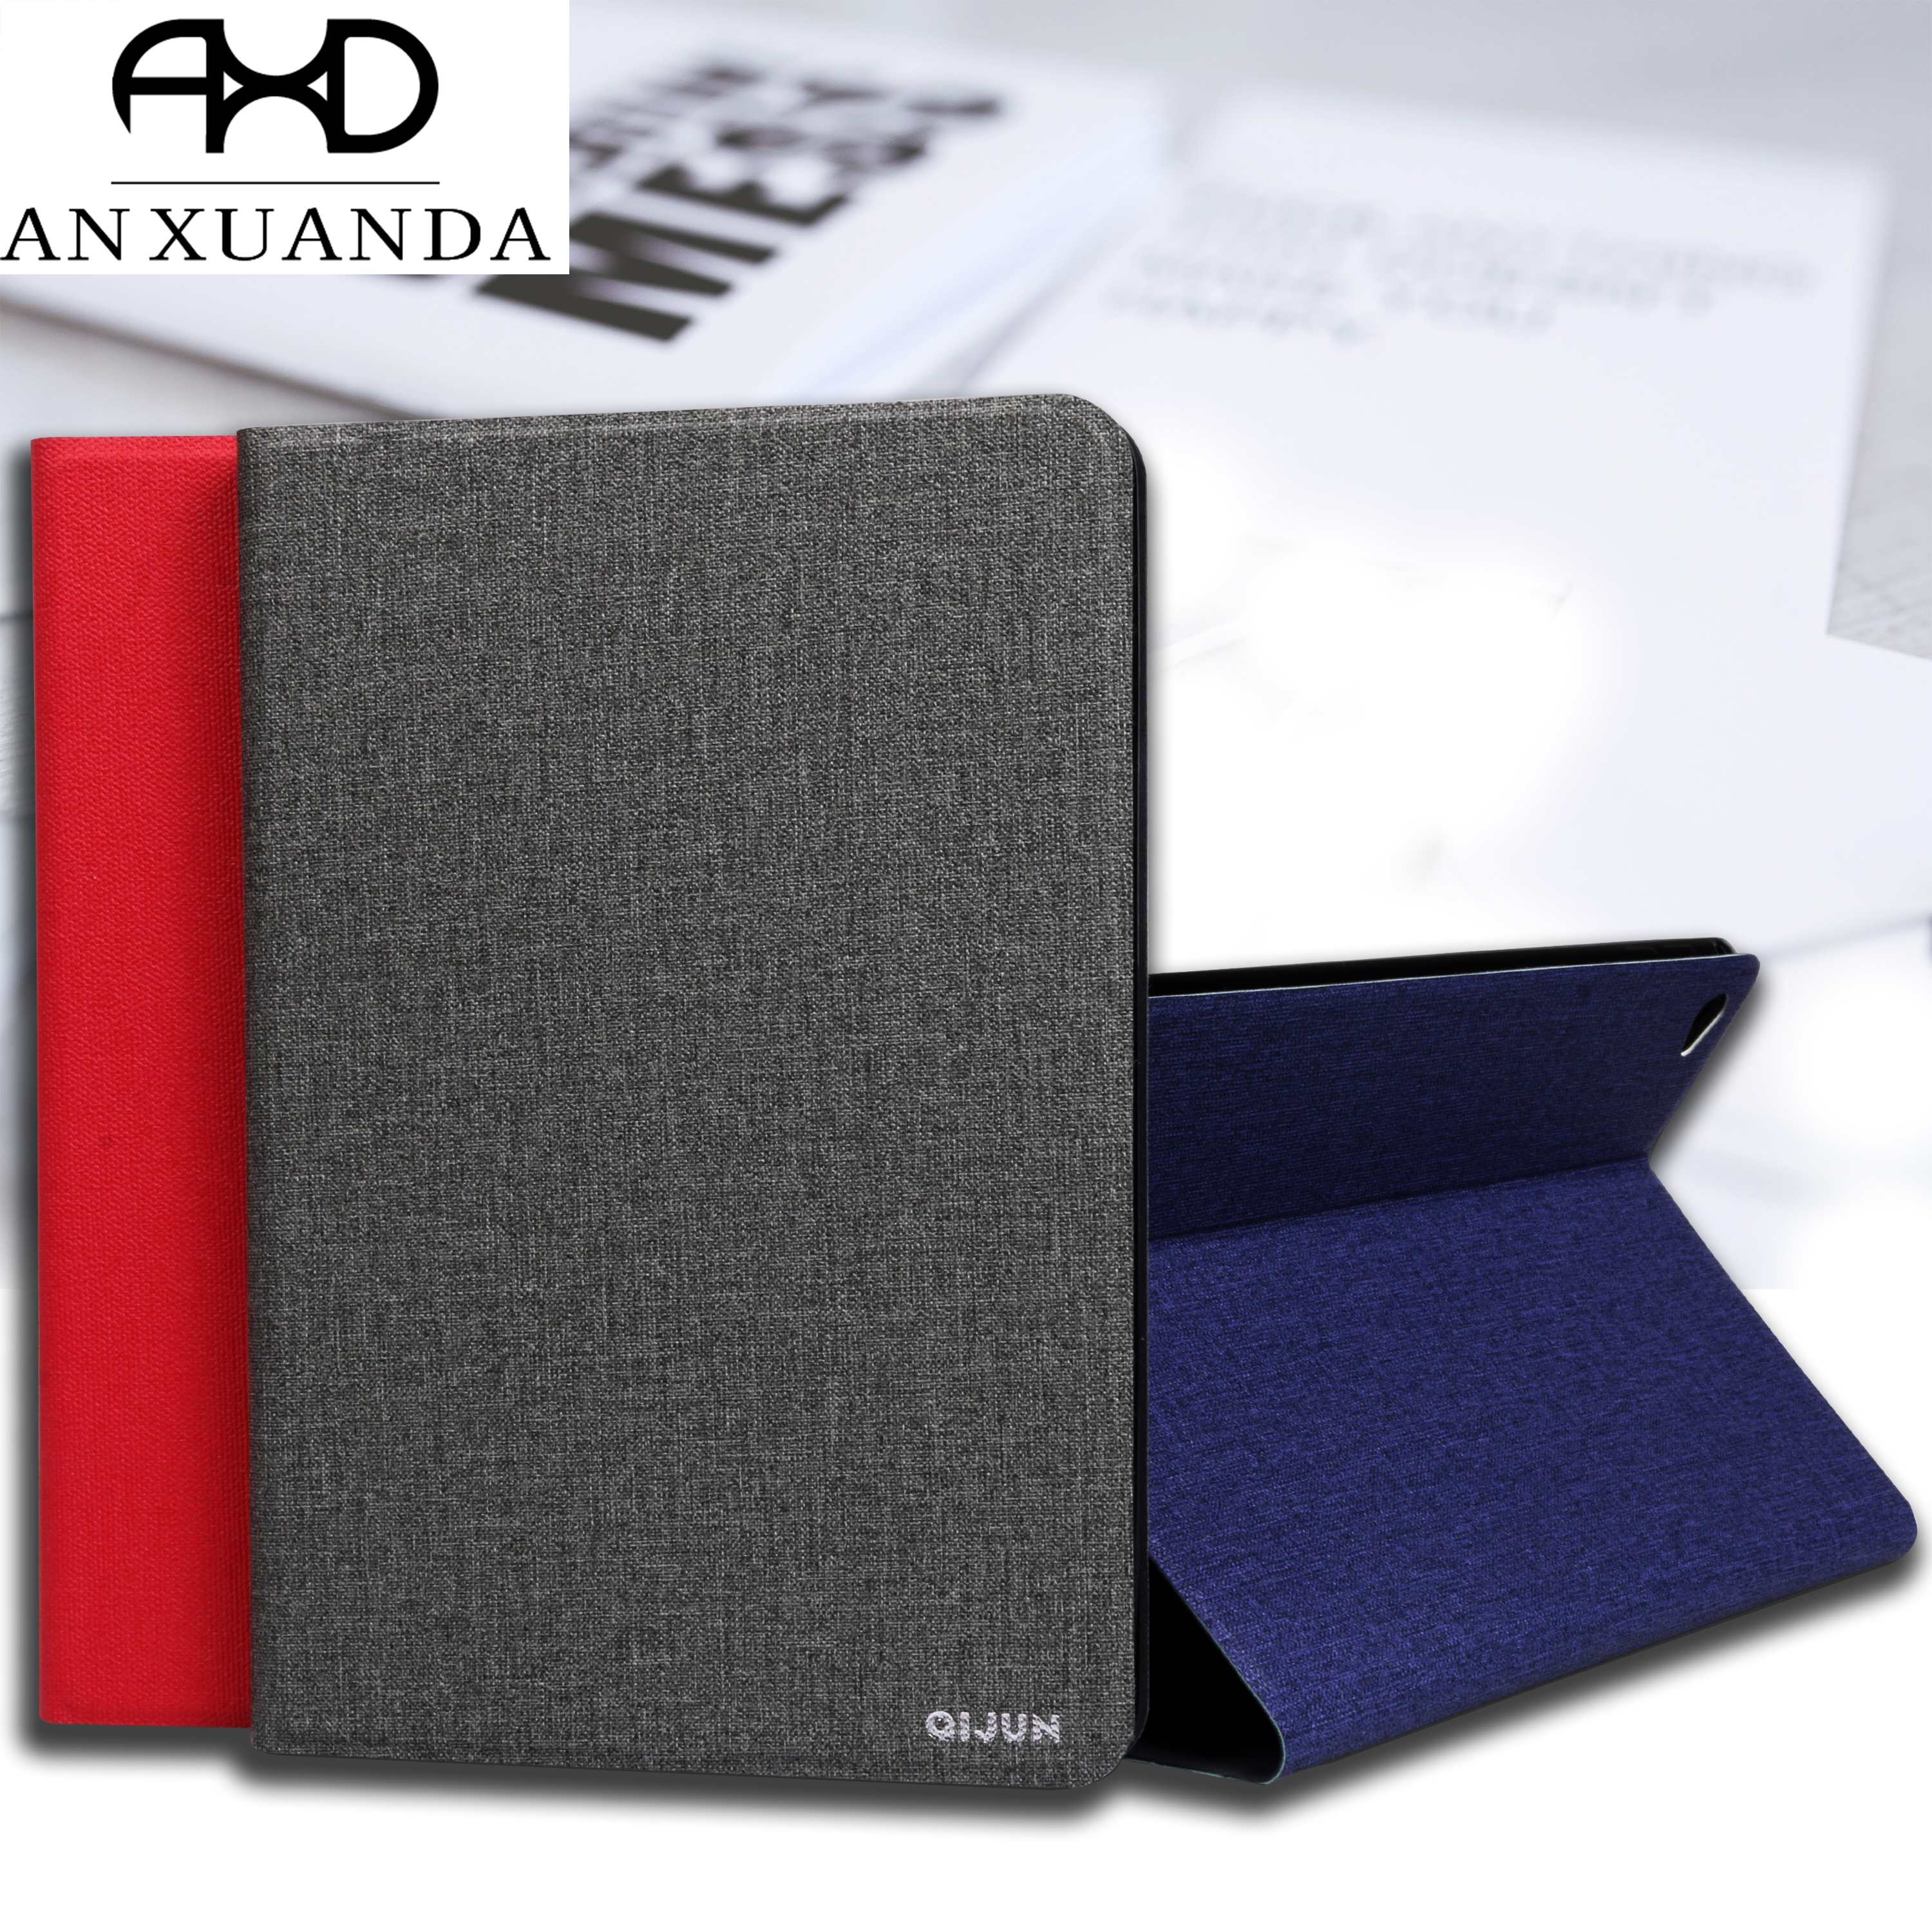 For Samsung Galaxy Tab A (2016) A6 10.1 Inch QIJUN Case For SM T580 T585 T580N T585N Case Slim Flip Cover Soft Protective Shell